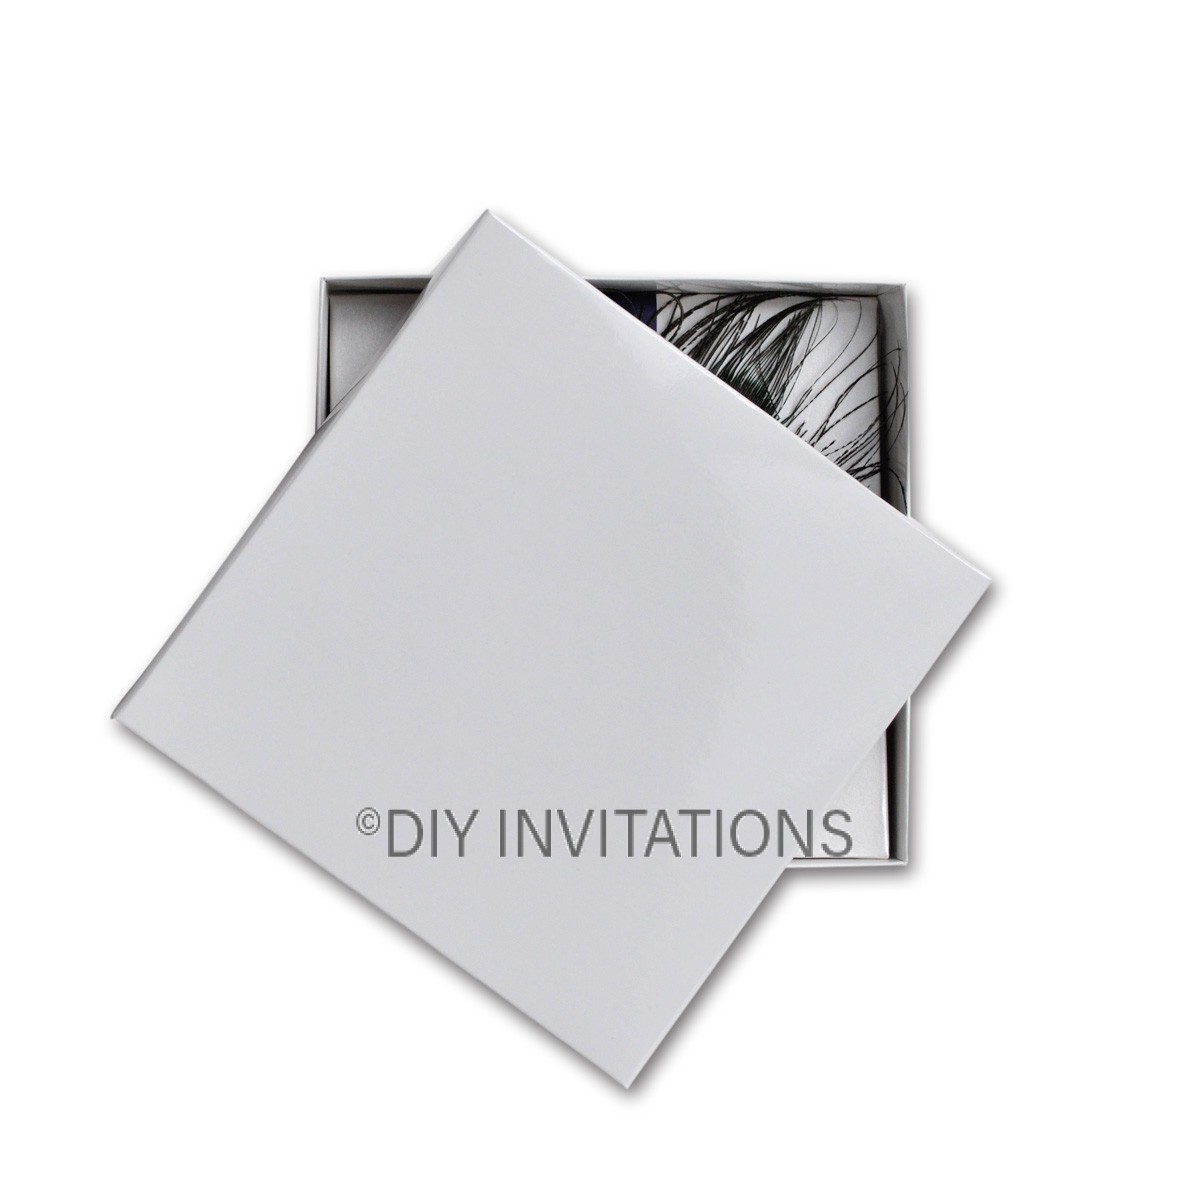 160 x 160 Square Invitation Box - white fold-up box